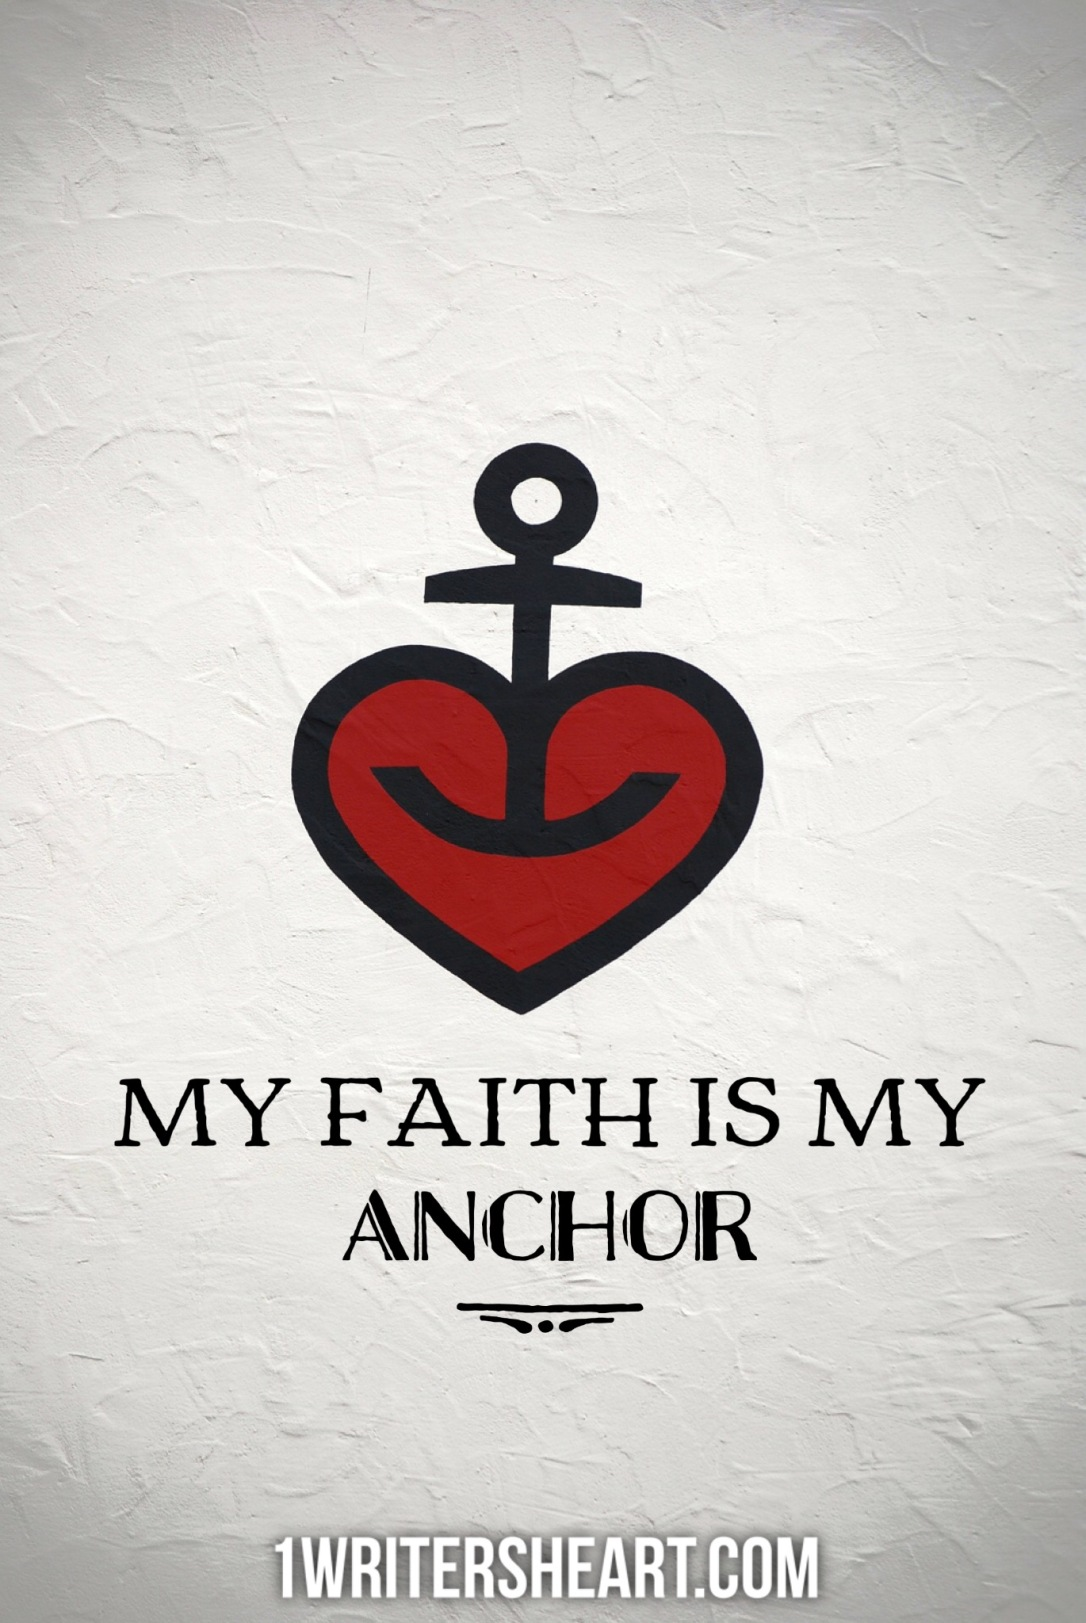 My faith, my anchor